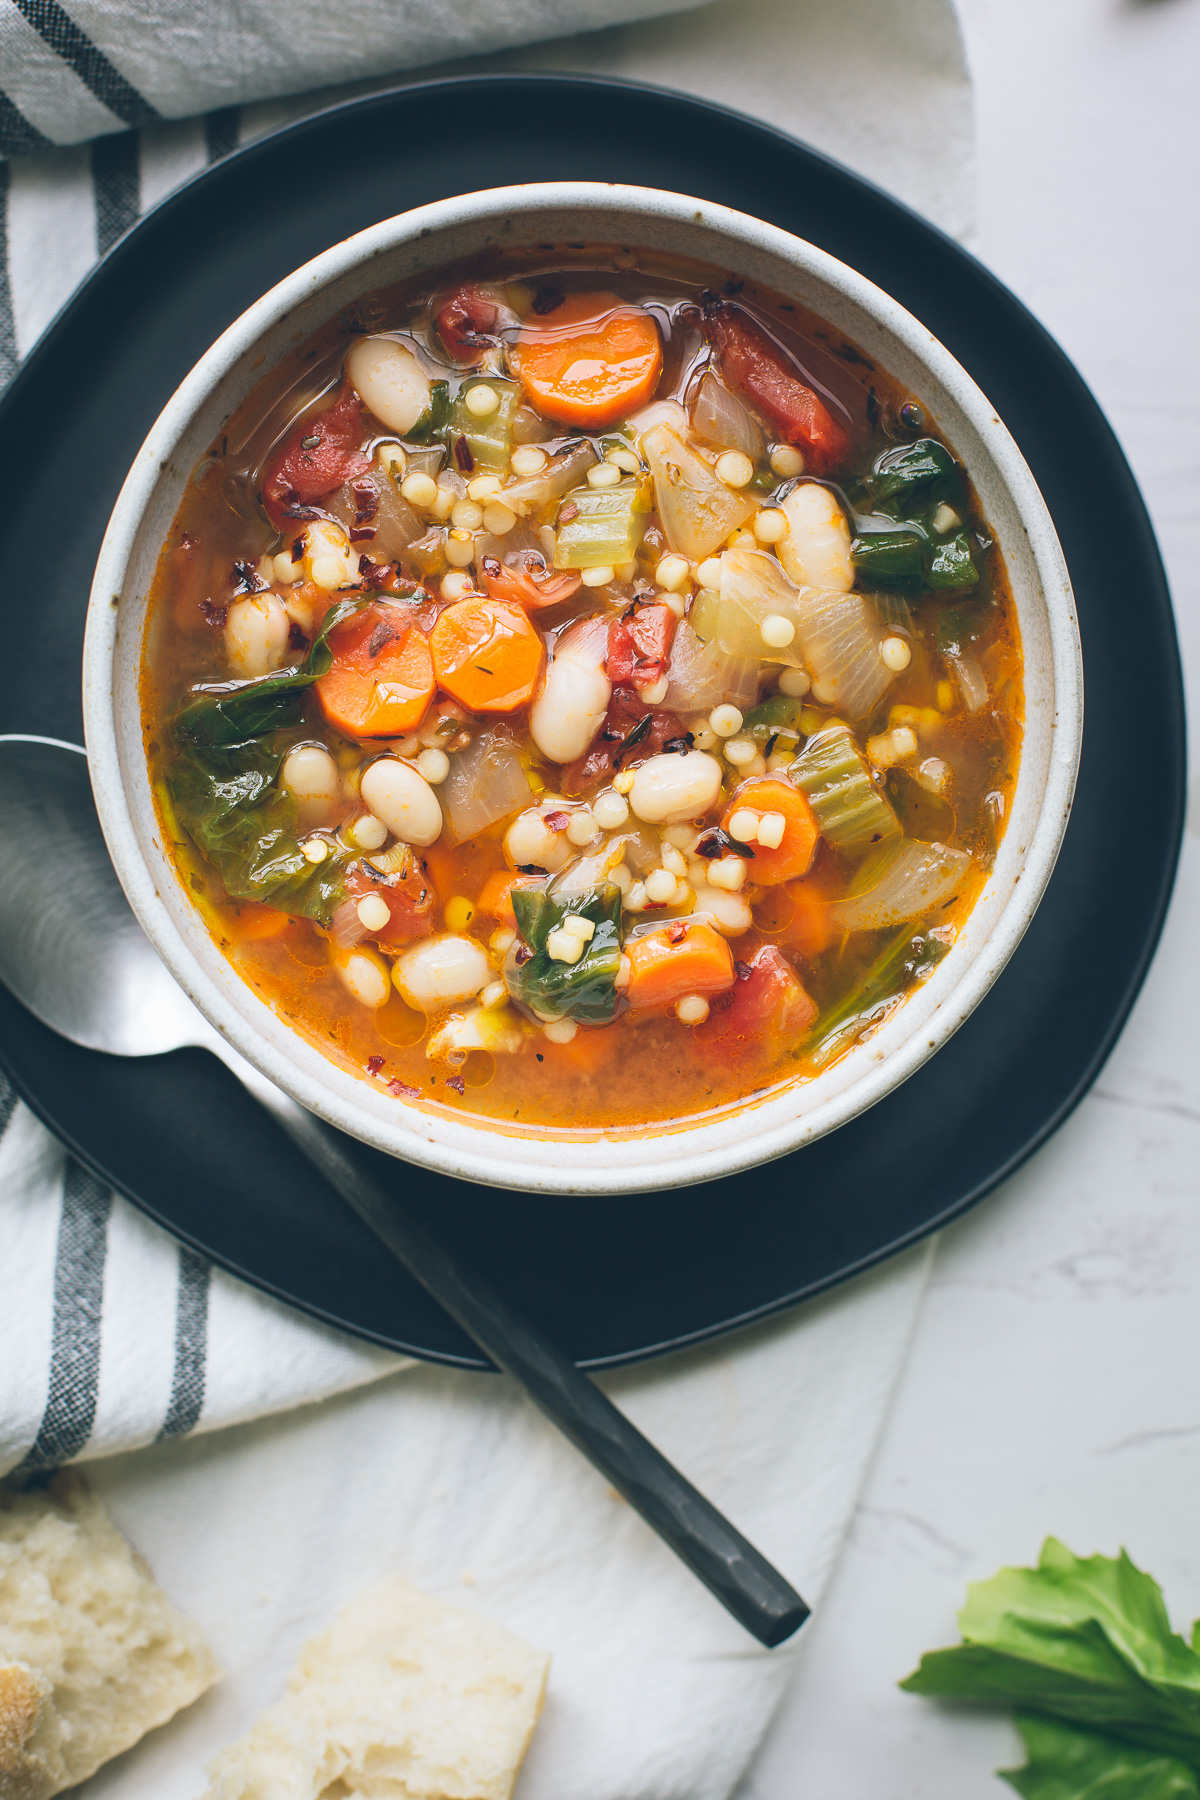 This simple, warming Escarole White Bean and Tomato Soup, full of complex flavors, is so nourishing and easily adapts to whatever you've got on hand. Make this your go-to winter soup. Naturally vegan with gluten-free options. From @tasteLUVnourish